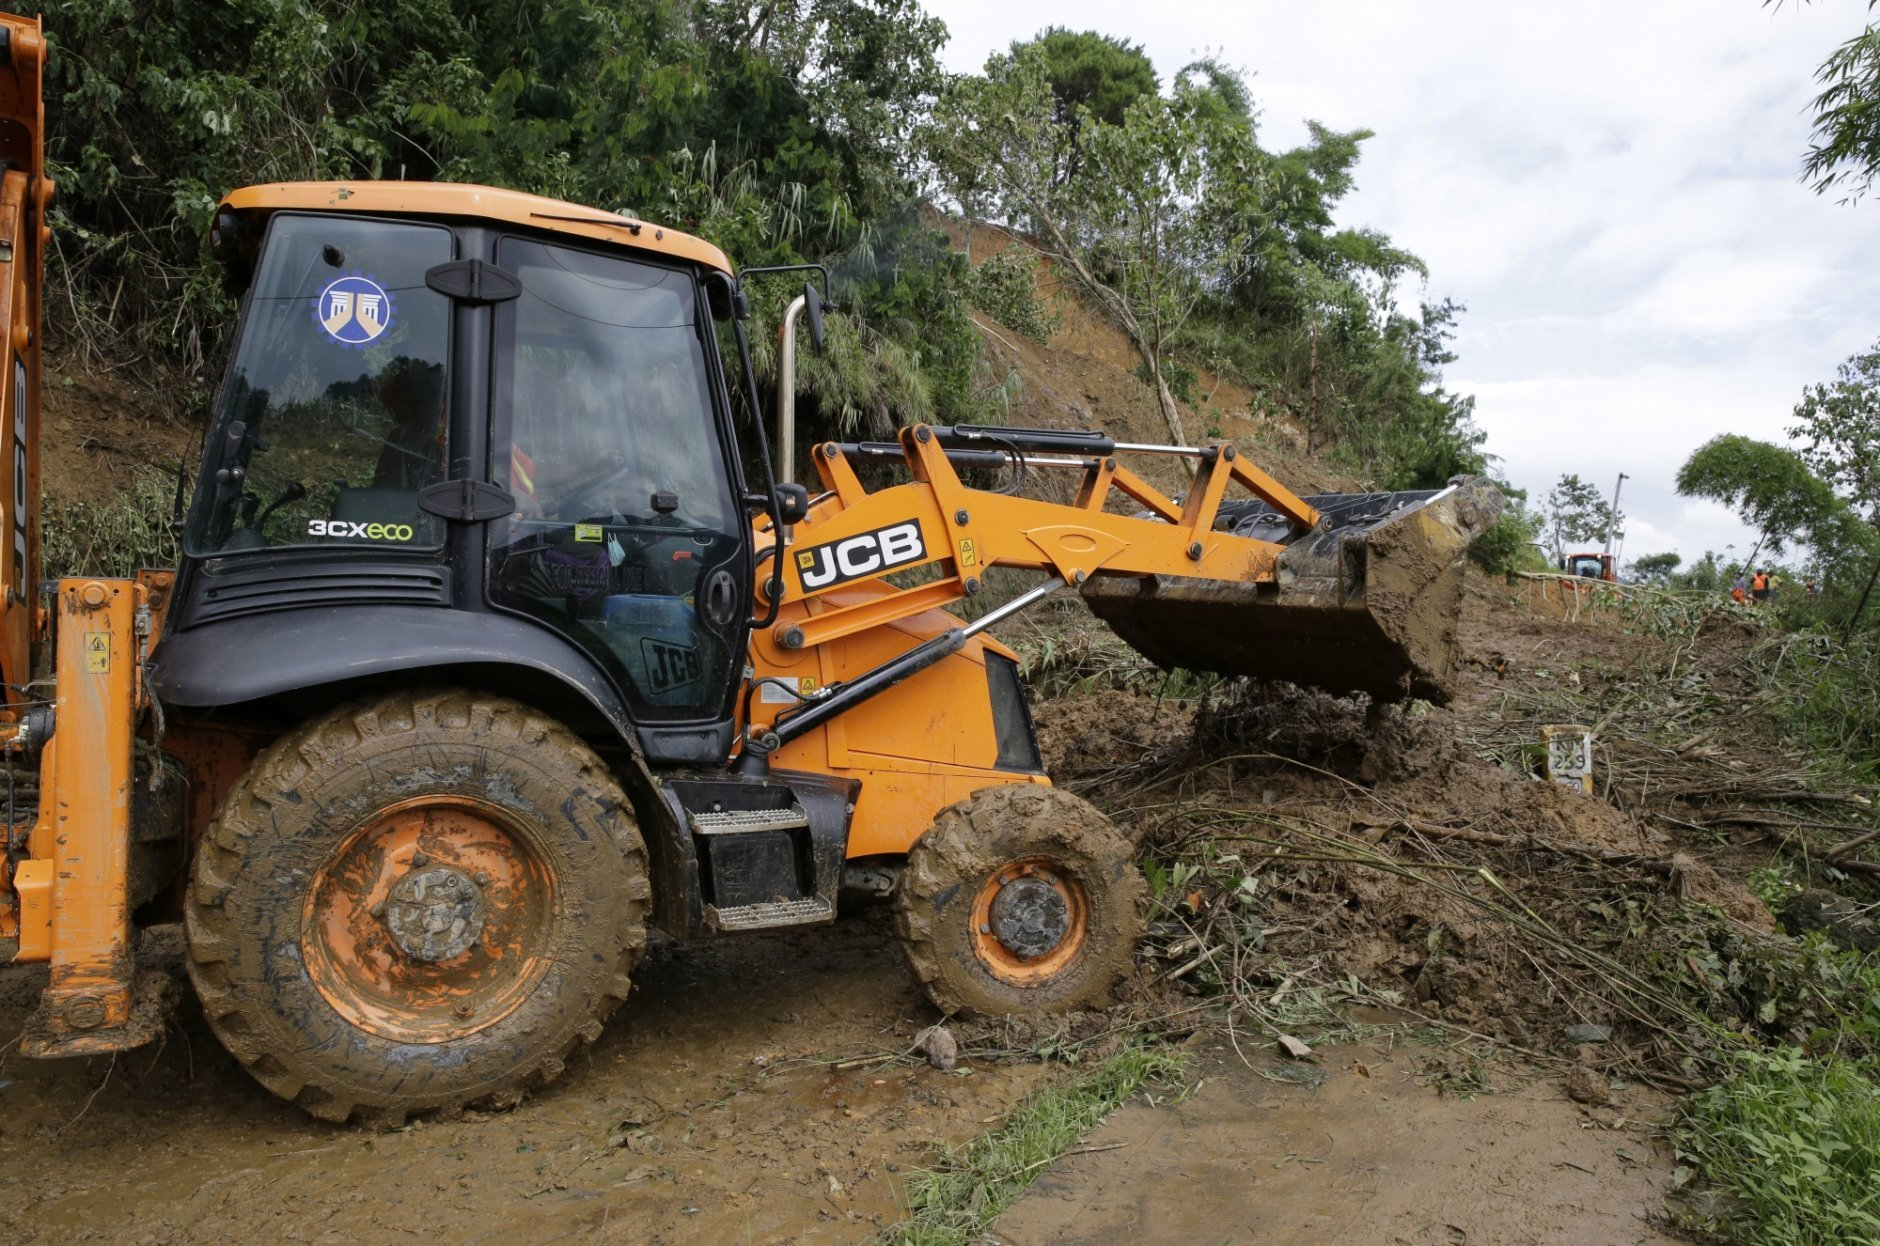 A truck works near the site where victims are believed to have been buried by a landslide after Typhoon Mangkhut barreled across Itogon, Benguet province, northern Philippines, Monday, Sept. 17, 2018. Itogon Mayor Victorio Palangdan said that at the height of the typhoon's onslaught Saturday afternoon, dozens of people, mostly miners and their families, rushed into an old three-story building in the village of Ucab. The building, a former mining bunkhouse that had been transformed into a chapel, was obliterated when part of a mountain slope collapsed. (AP Photo/Aaron Favila)